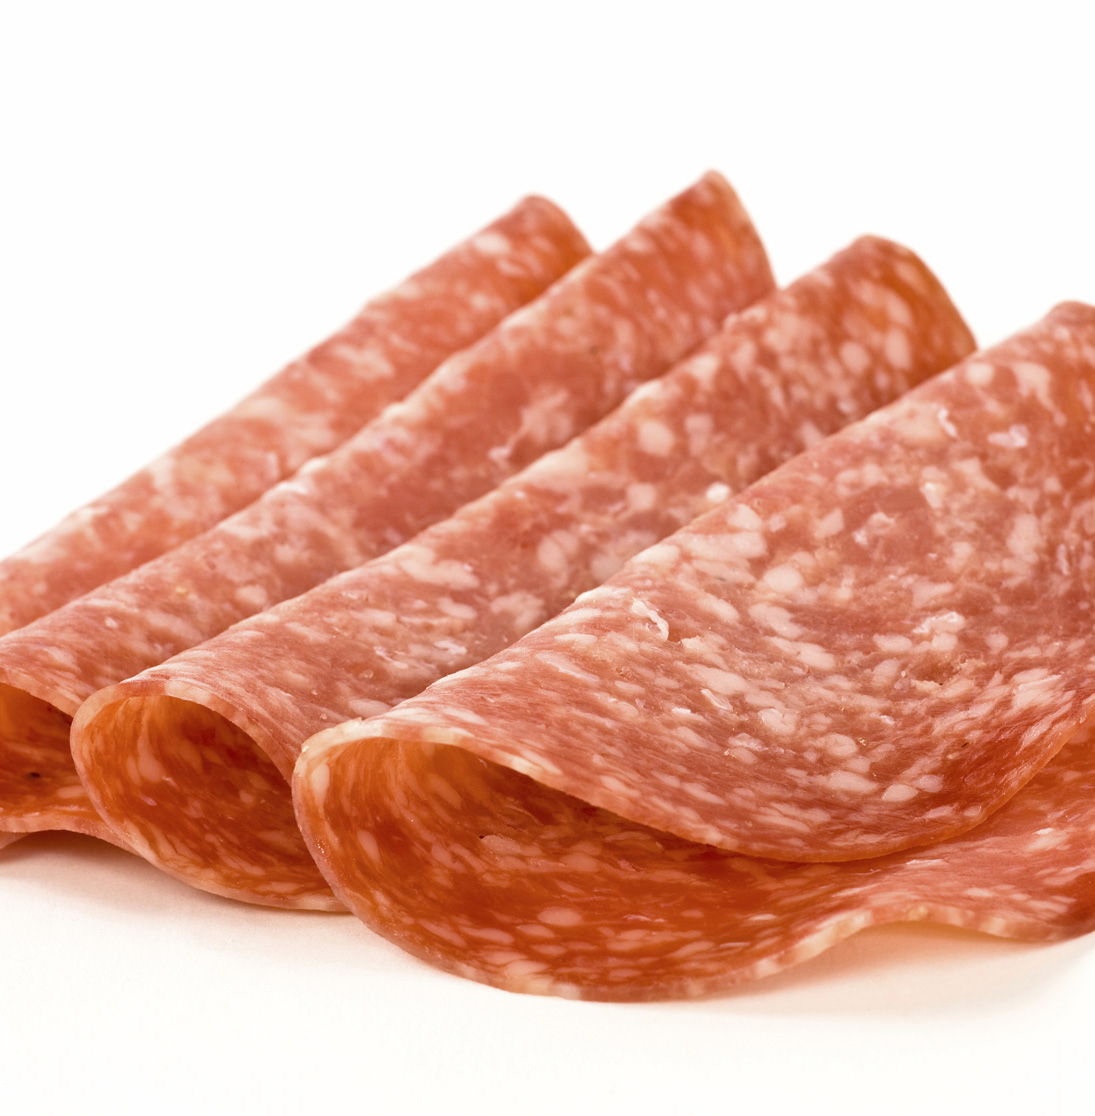 Sliced, Turkey Salami, 1oz, AA